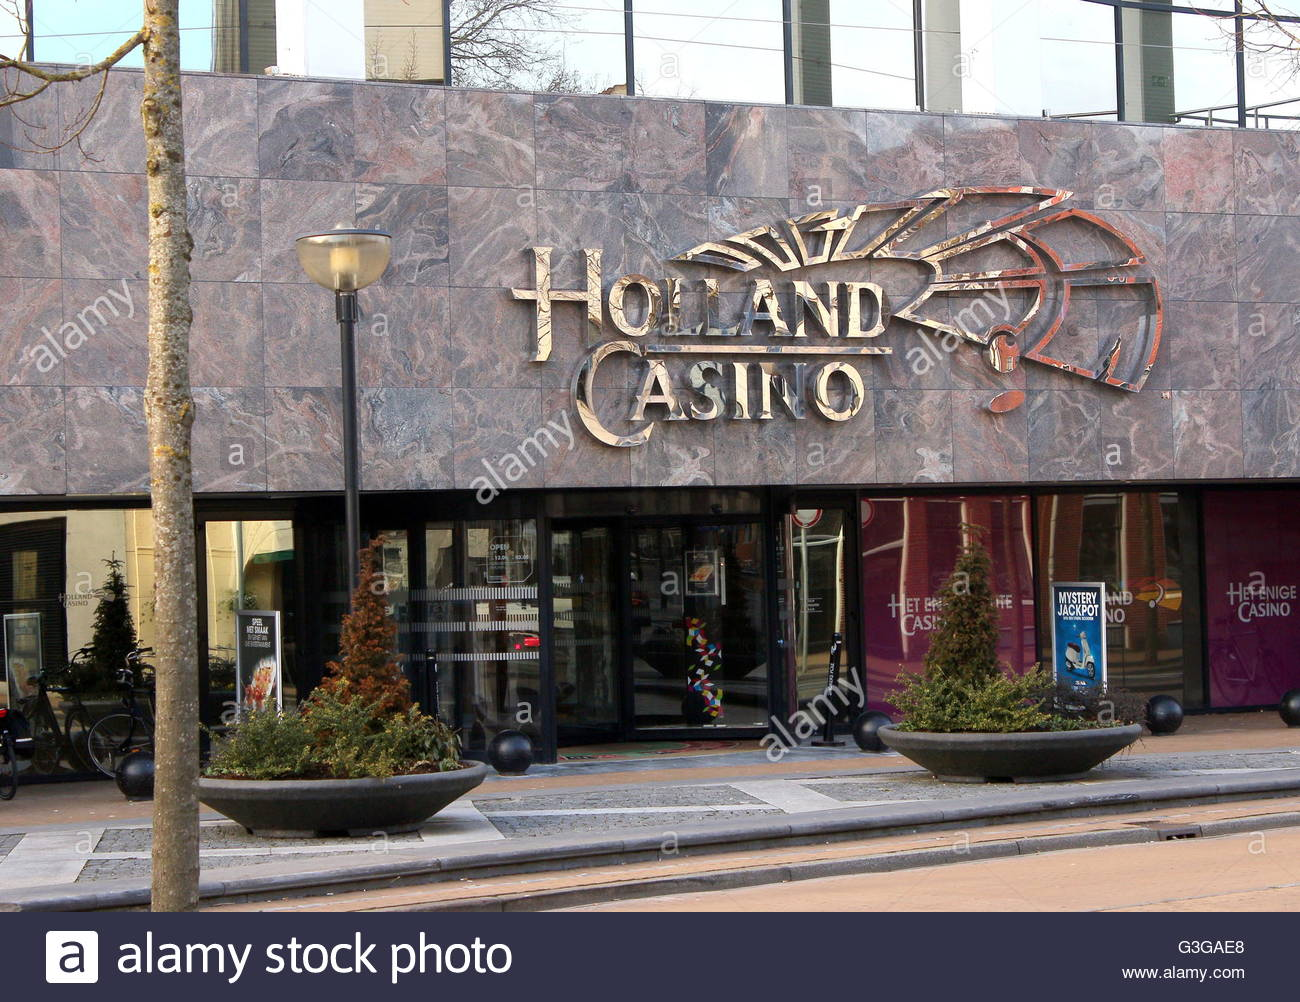 Holland Casino up 11% in 2019